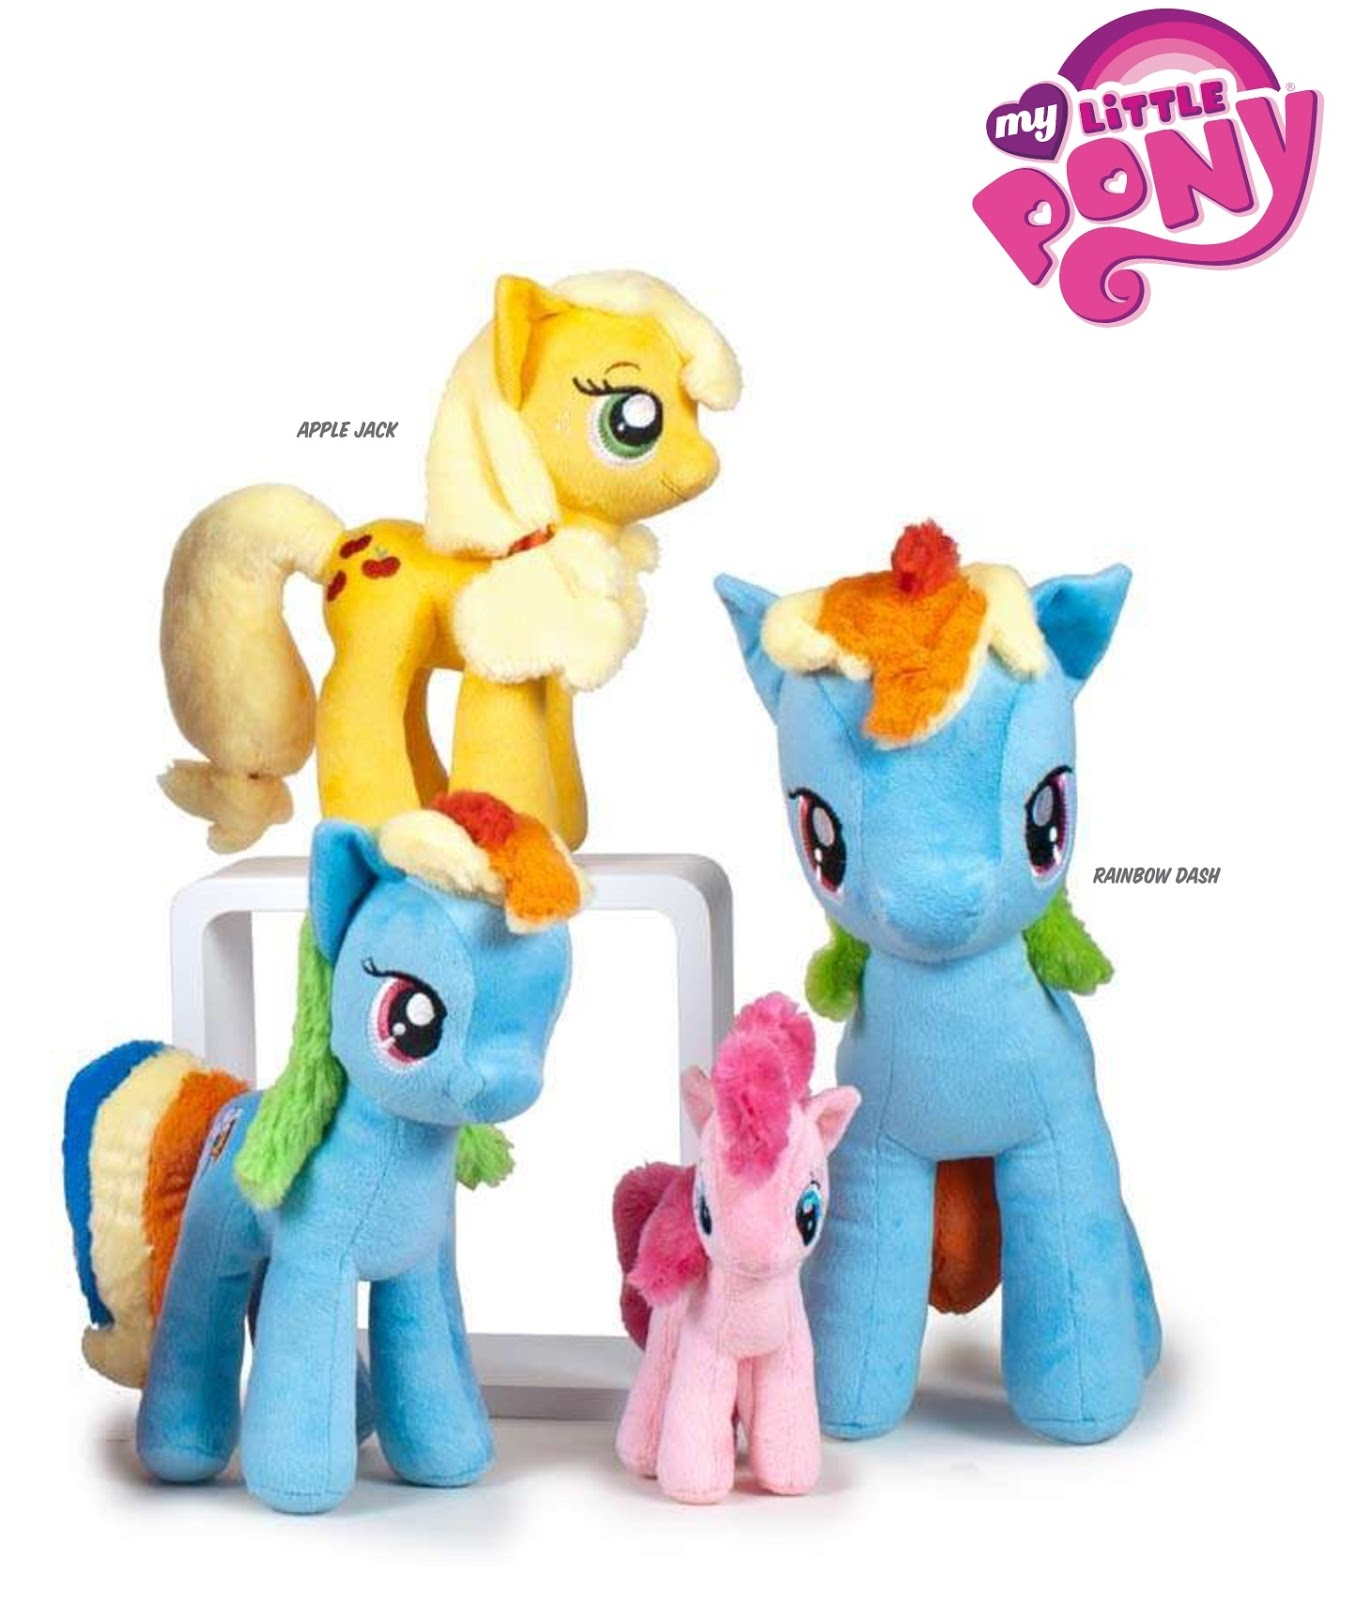 Play by Play Applejack Rainbow Dash Pinkie Pie Plushies